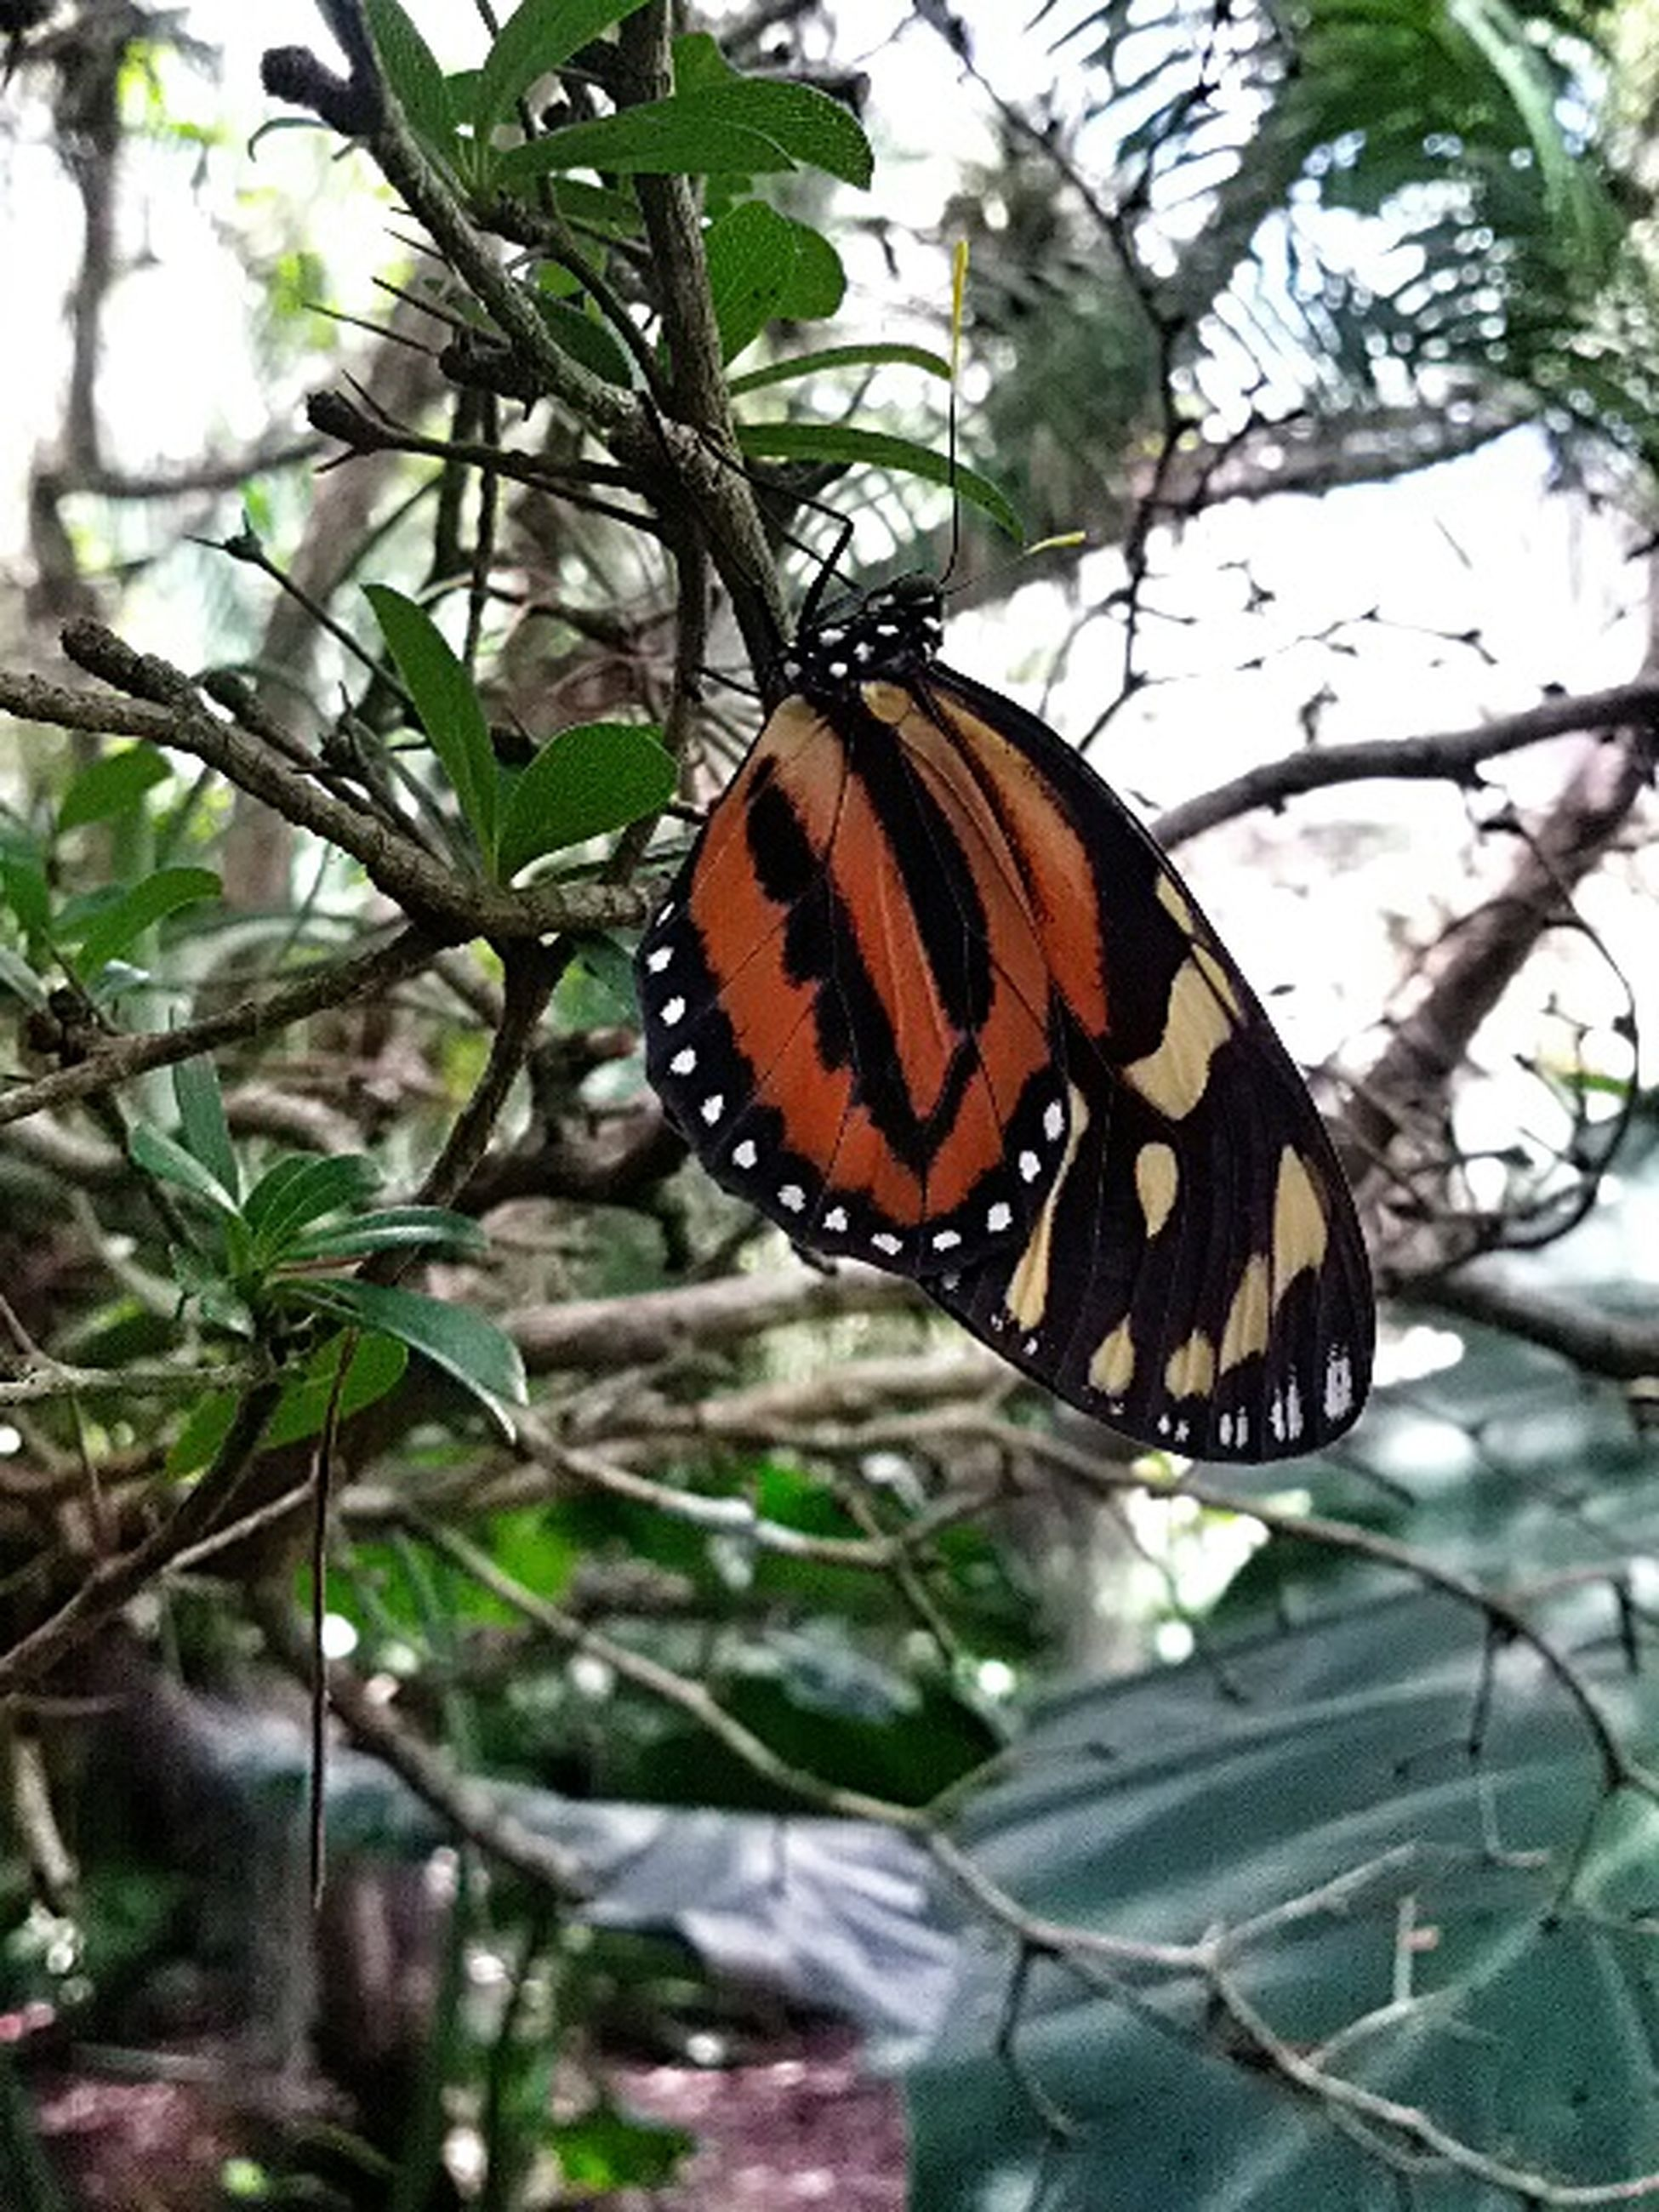 butterfly - insect, one animal, insect, animal markings, butterfly, animal themes, animals in the wild, leaf, wildlife, focus on foreground, close-up, natural pattern, plant, nature, beauty in nature, growth, orange color, fragility, outdoors, day